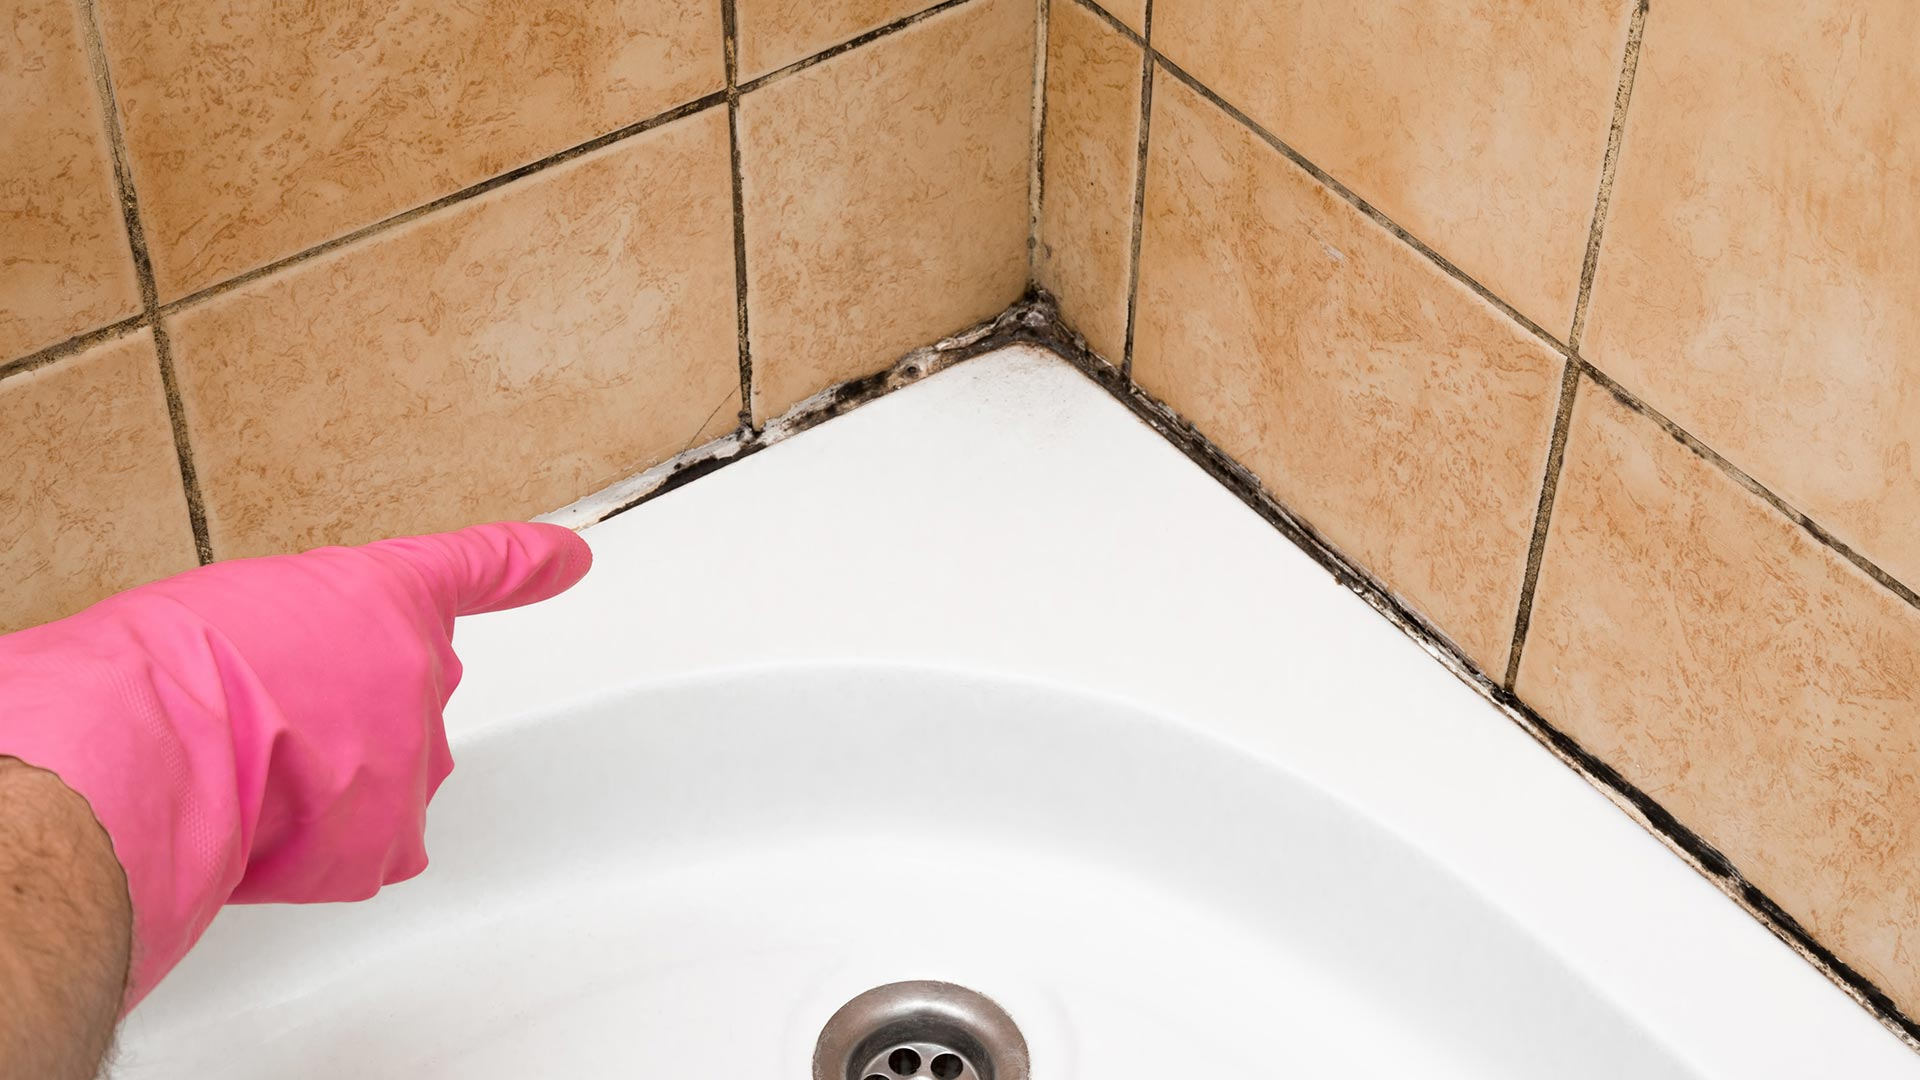 Mold vs. Mildew: How to Tell the Difference